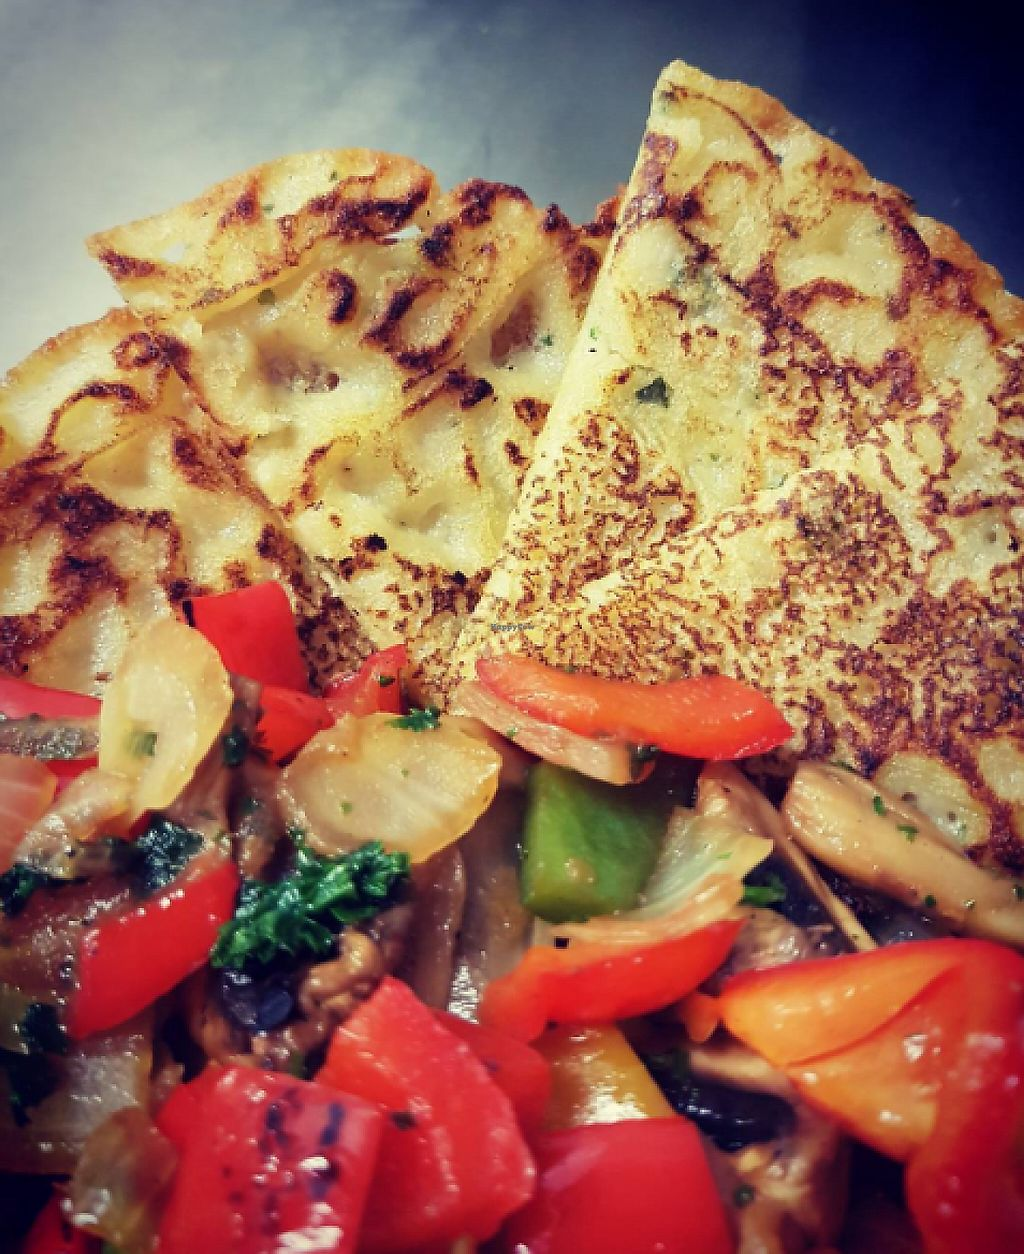 """Photo of Tom and Max  by <a href=""""/members/profile/m%C3%A4xveg"""">mäxveg</a> <br/>We have daily changing menus. This one is a Pancake with fried sweetpeppers .  <br/> May 3, 2017  - <a href='/contact/abuse/image/84996/255245'>Report</a>"""